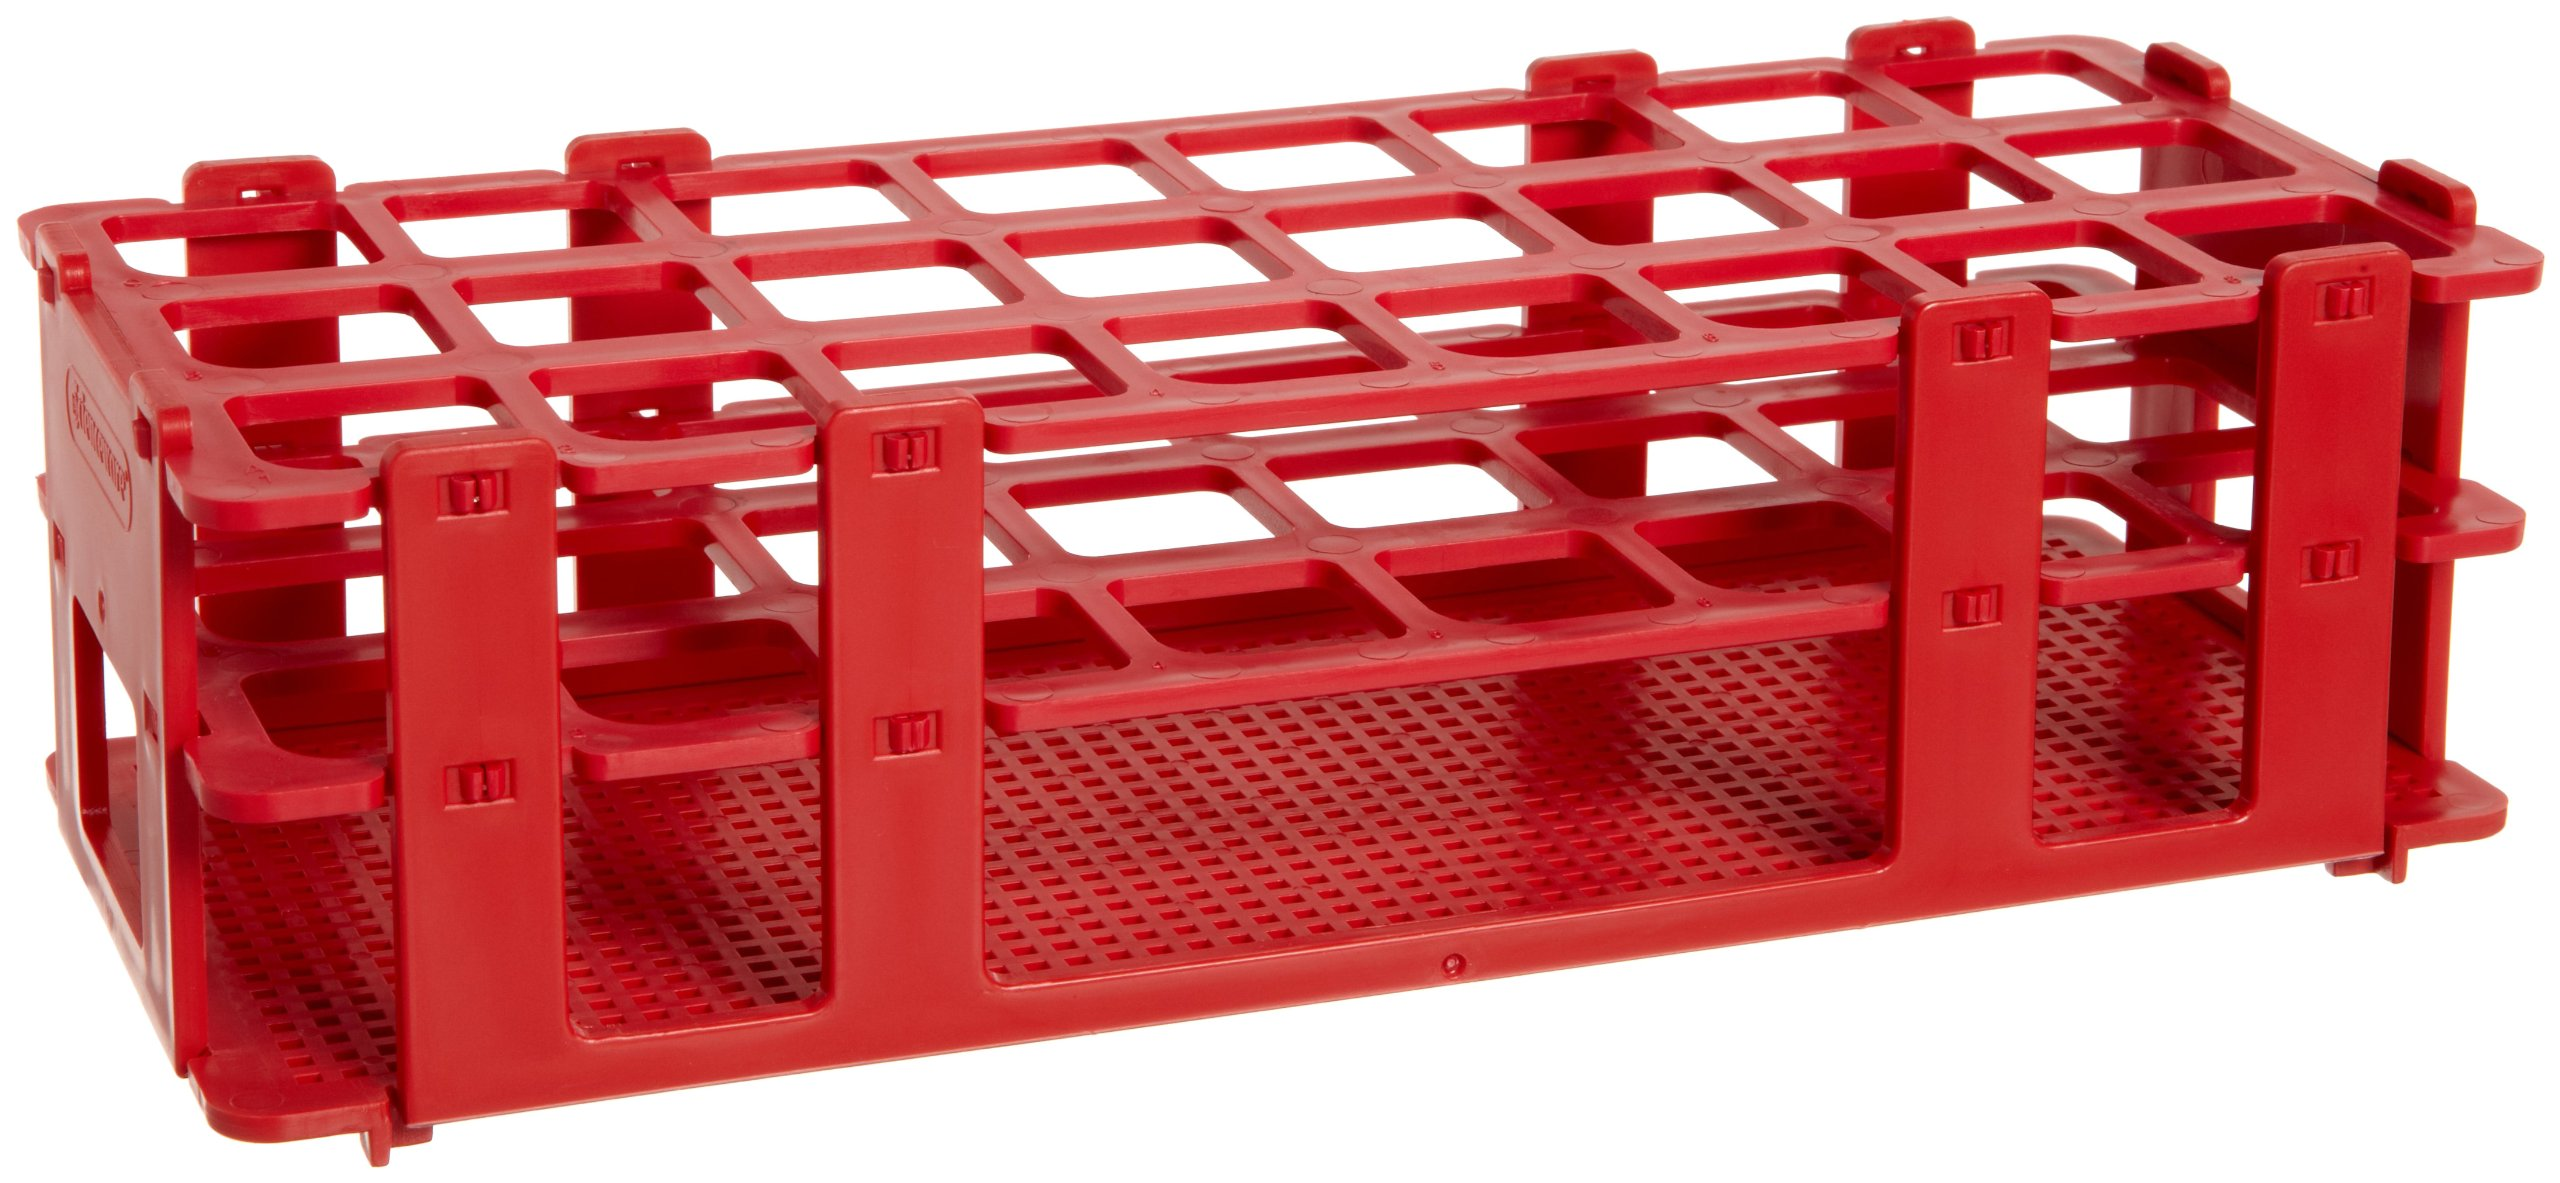 Bel-Art F18746-0003 No-Wire Test Tube Rack; 20-25mm, 24 Places, 9.7 x 4.1 x 2.5 in., Polypropylene, Red by SP Scienceware